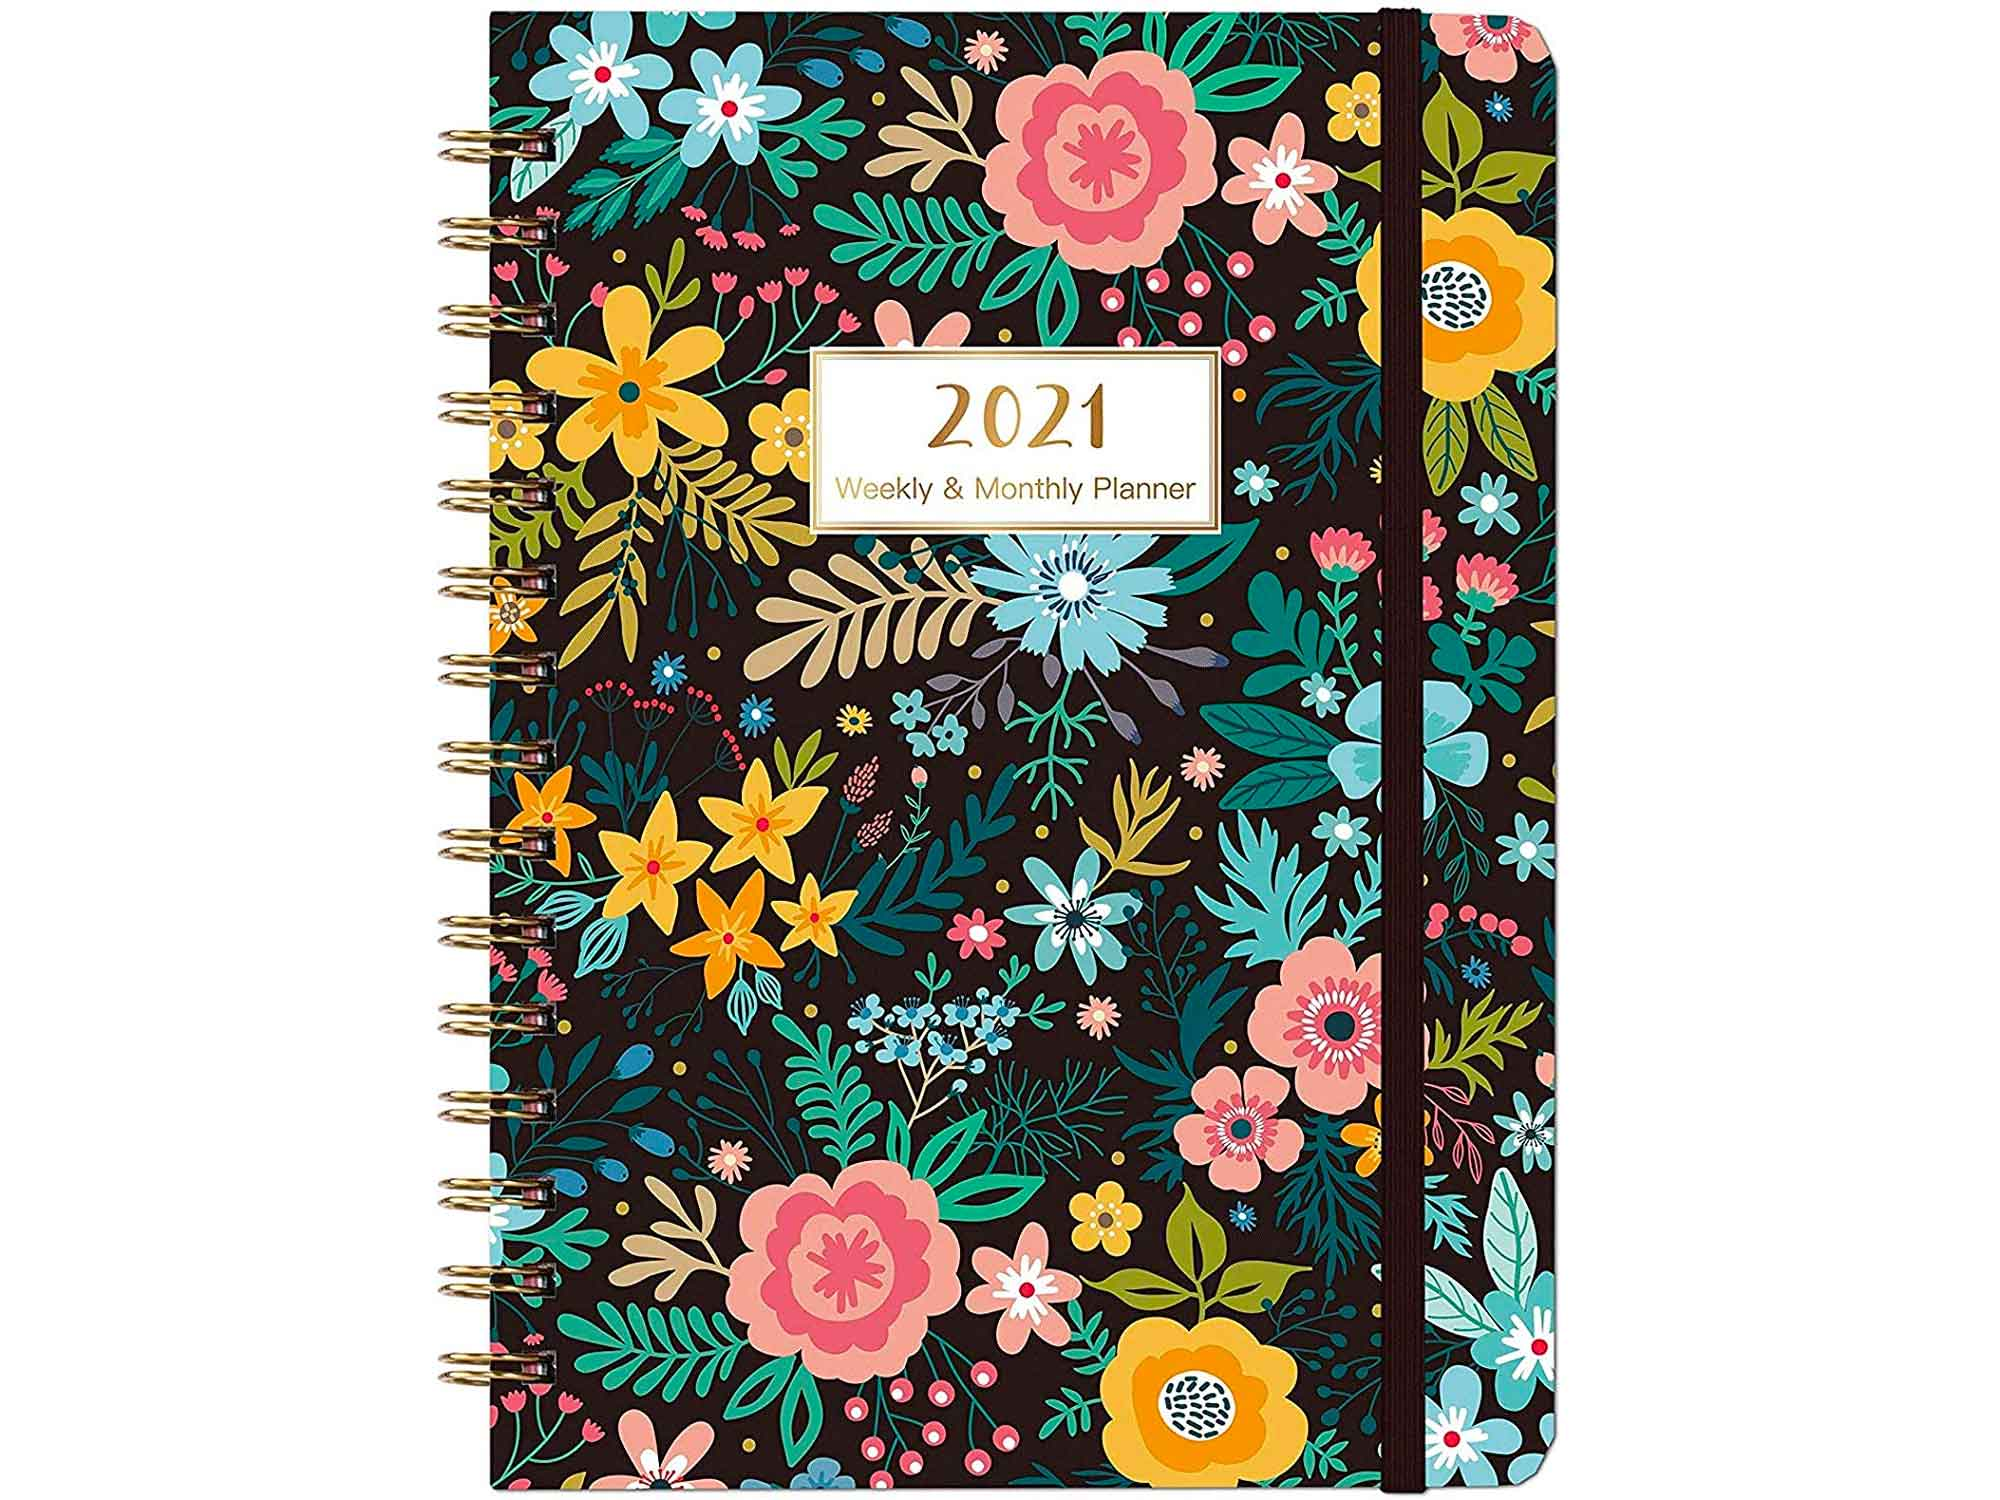 2021 Planner - Weekly & Monthly Planner 2021 with Marked Tabs, Jan 2021 - Dec 2021, 8.5